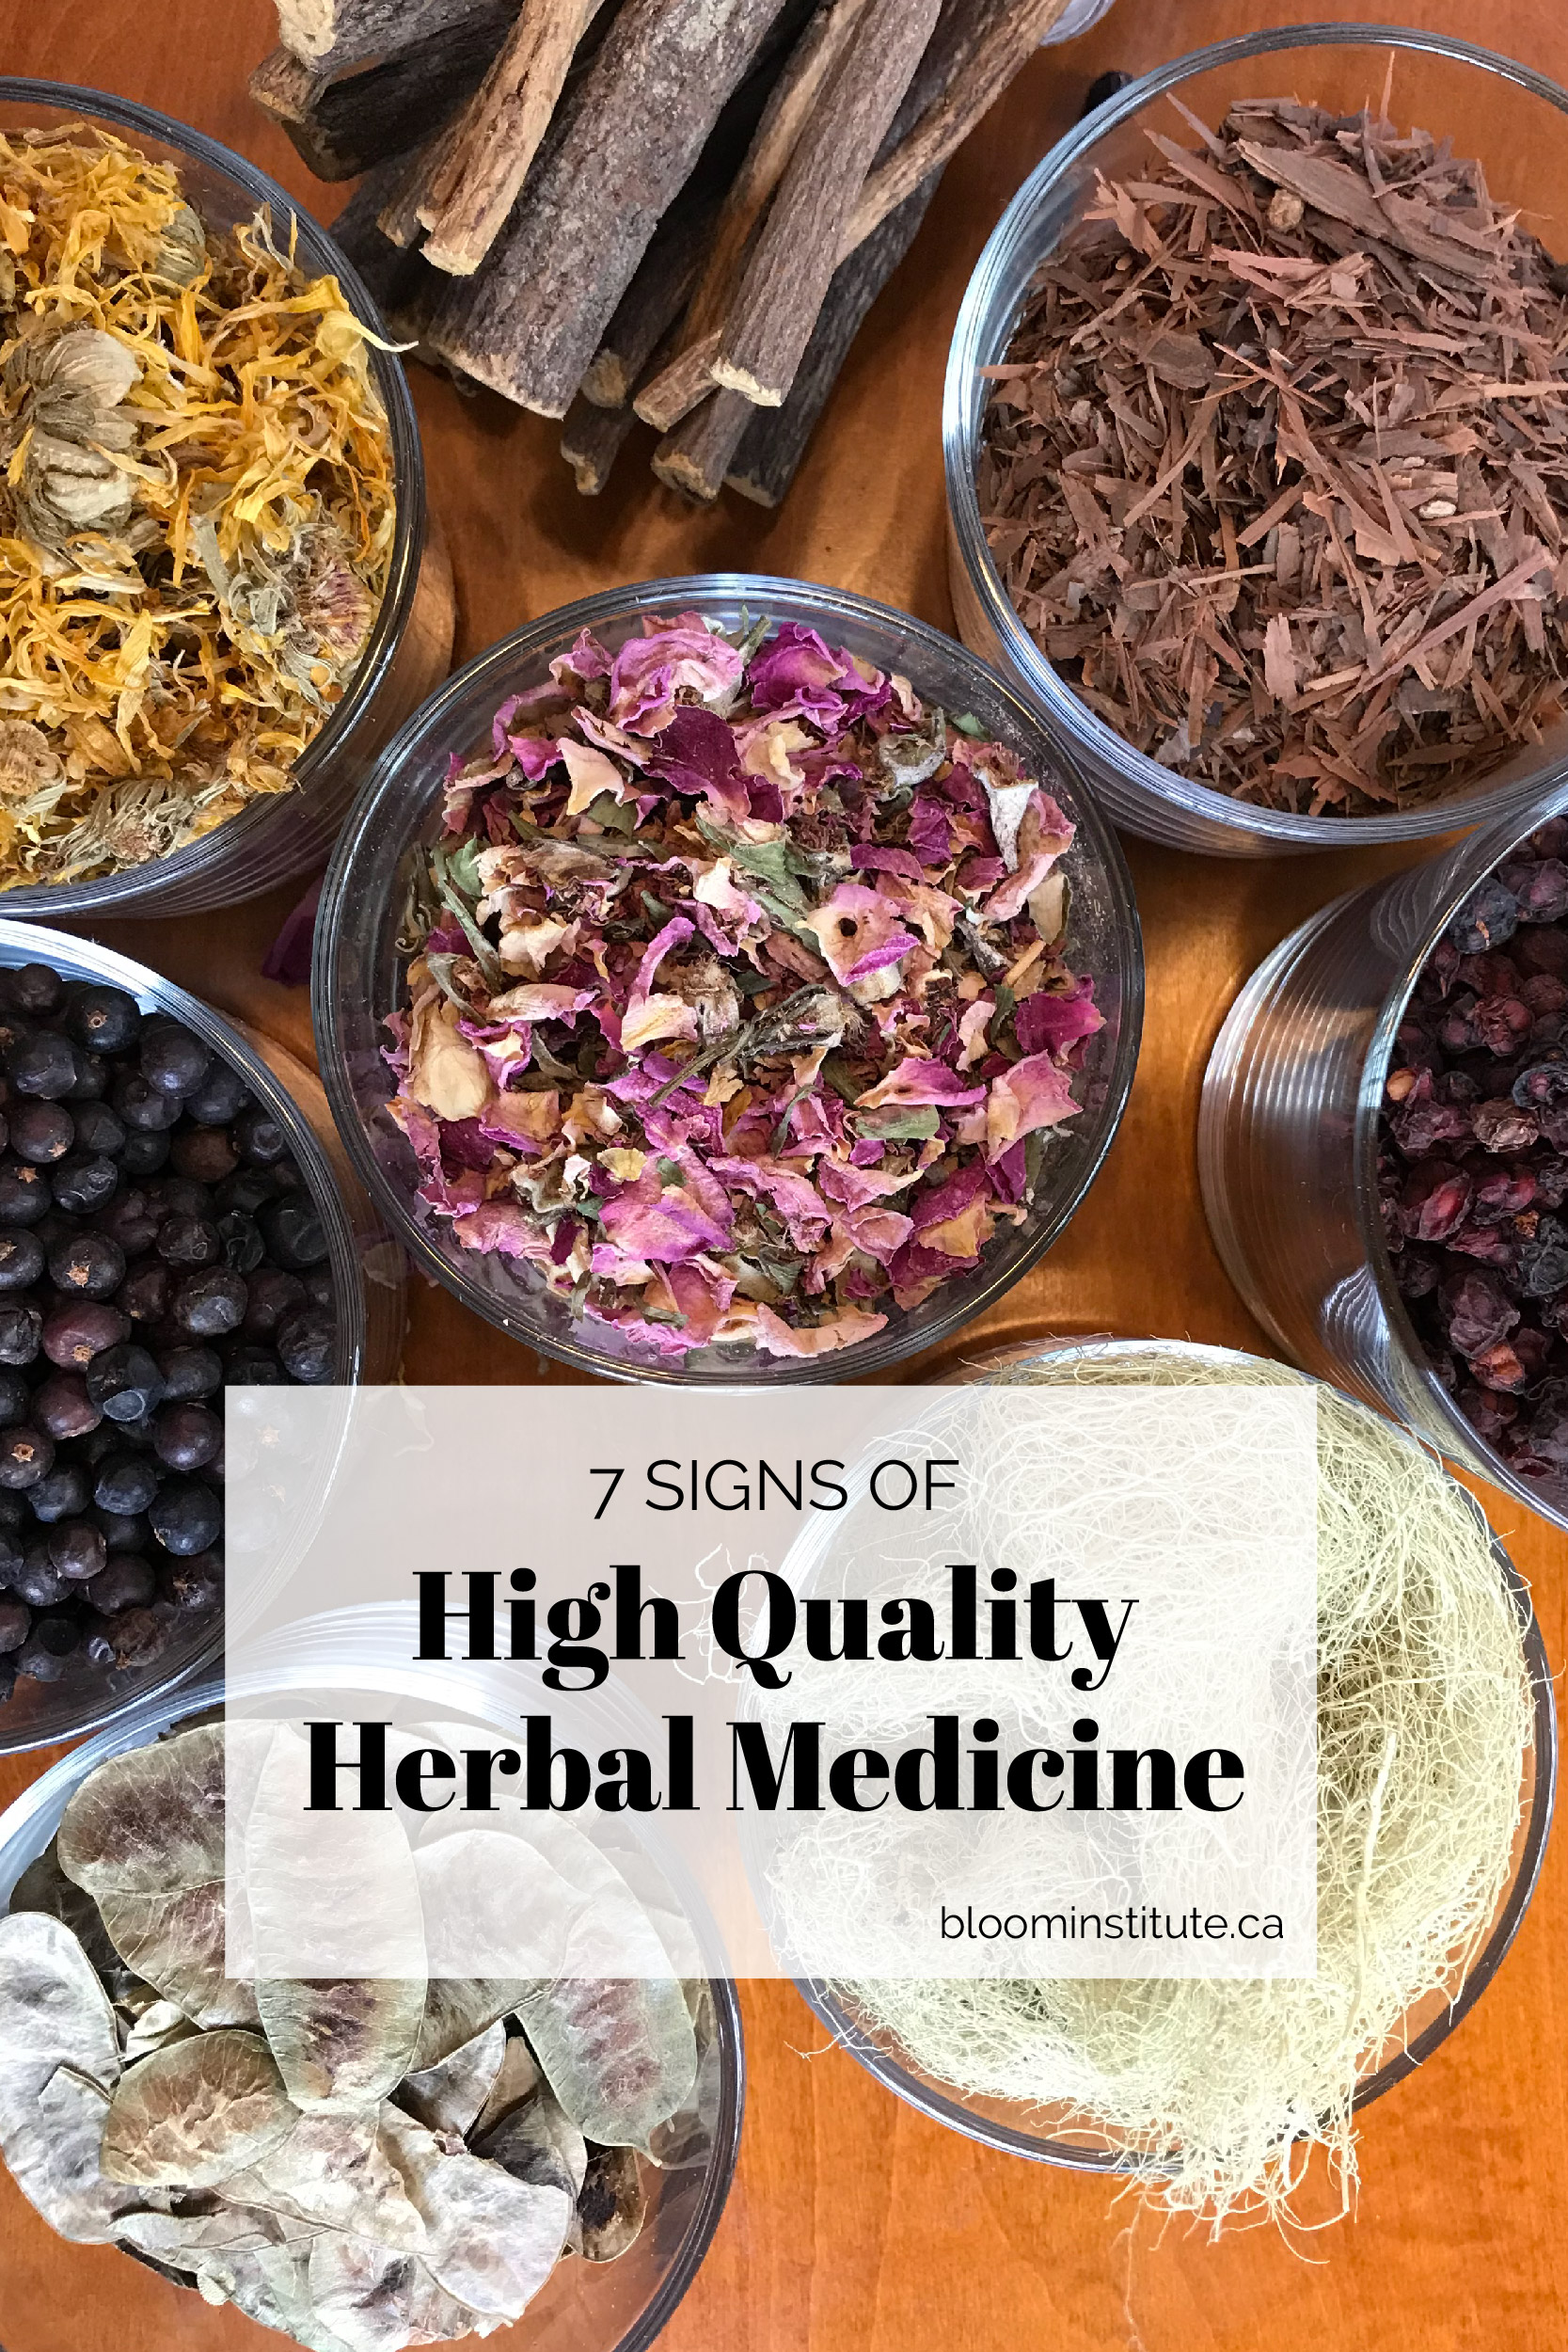 signs of high quality herbal medicine pin